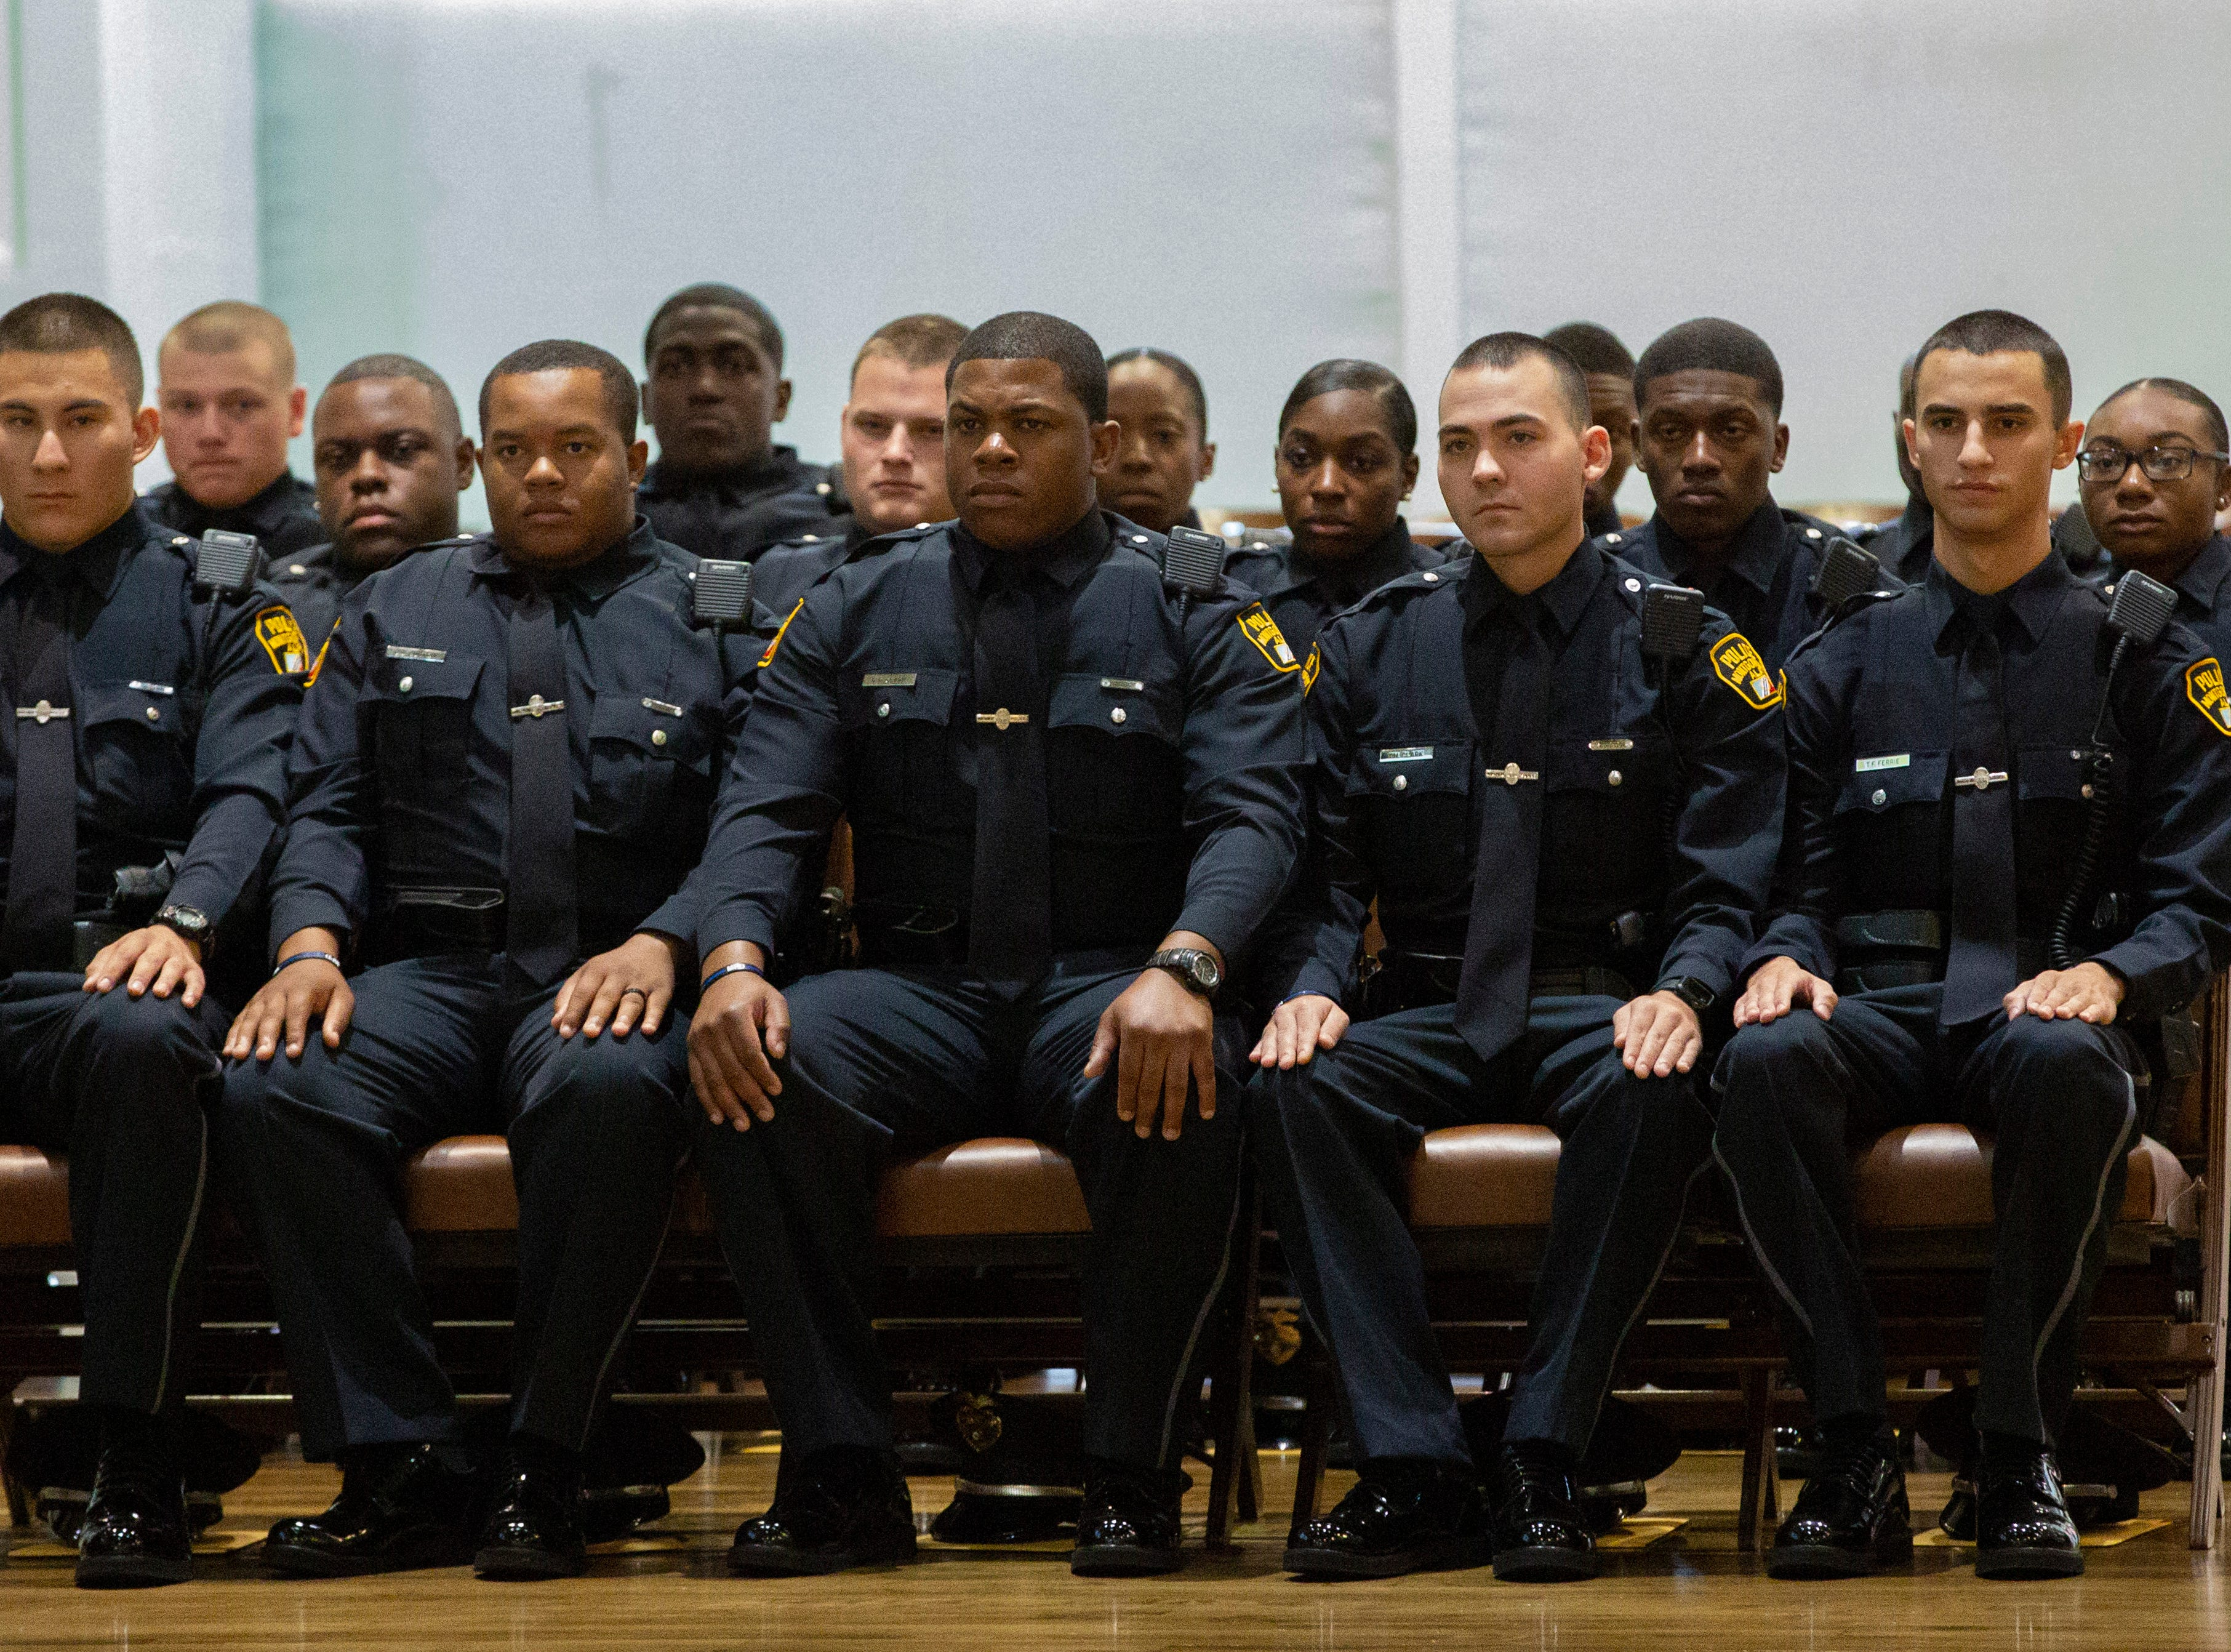 Montgomery police welcomed 16 new officers to their ranks during a graduation ceremony at city hall.